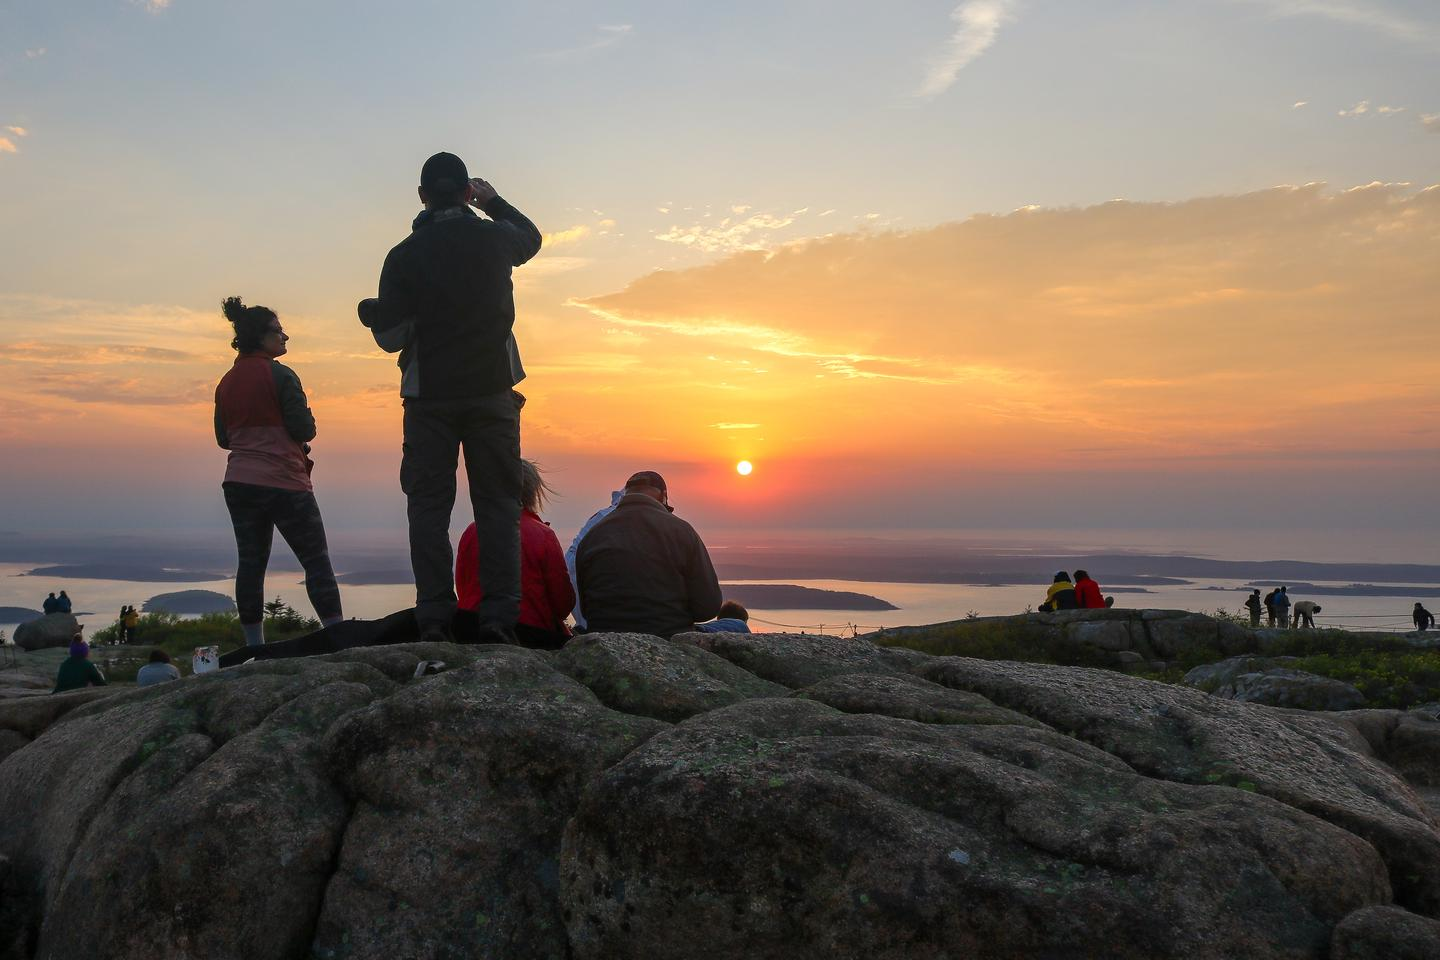 About a dozen people sitting and standing across granite outcrops watch the bright orange and red sunrise on the horizon overlooking the ocean from a mountain top.Sunrise on Cadillac Mountain.